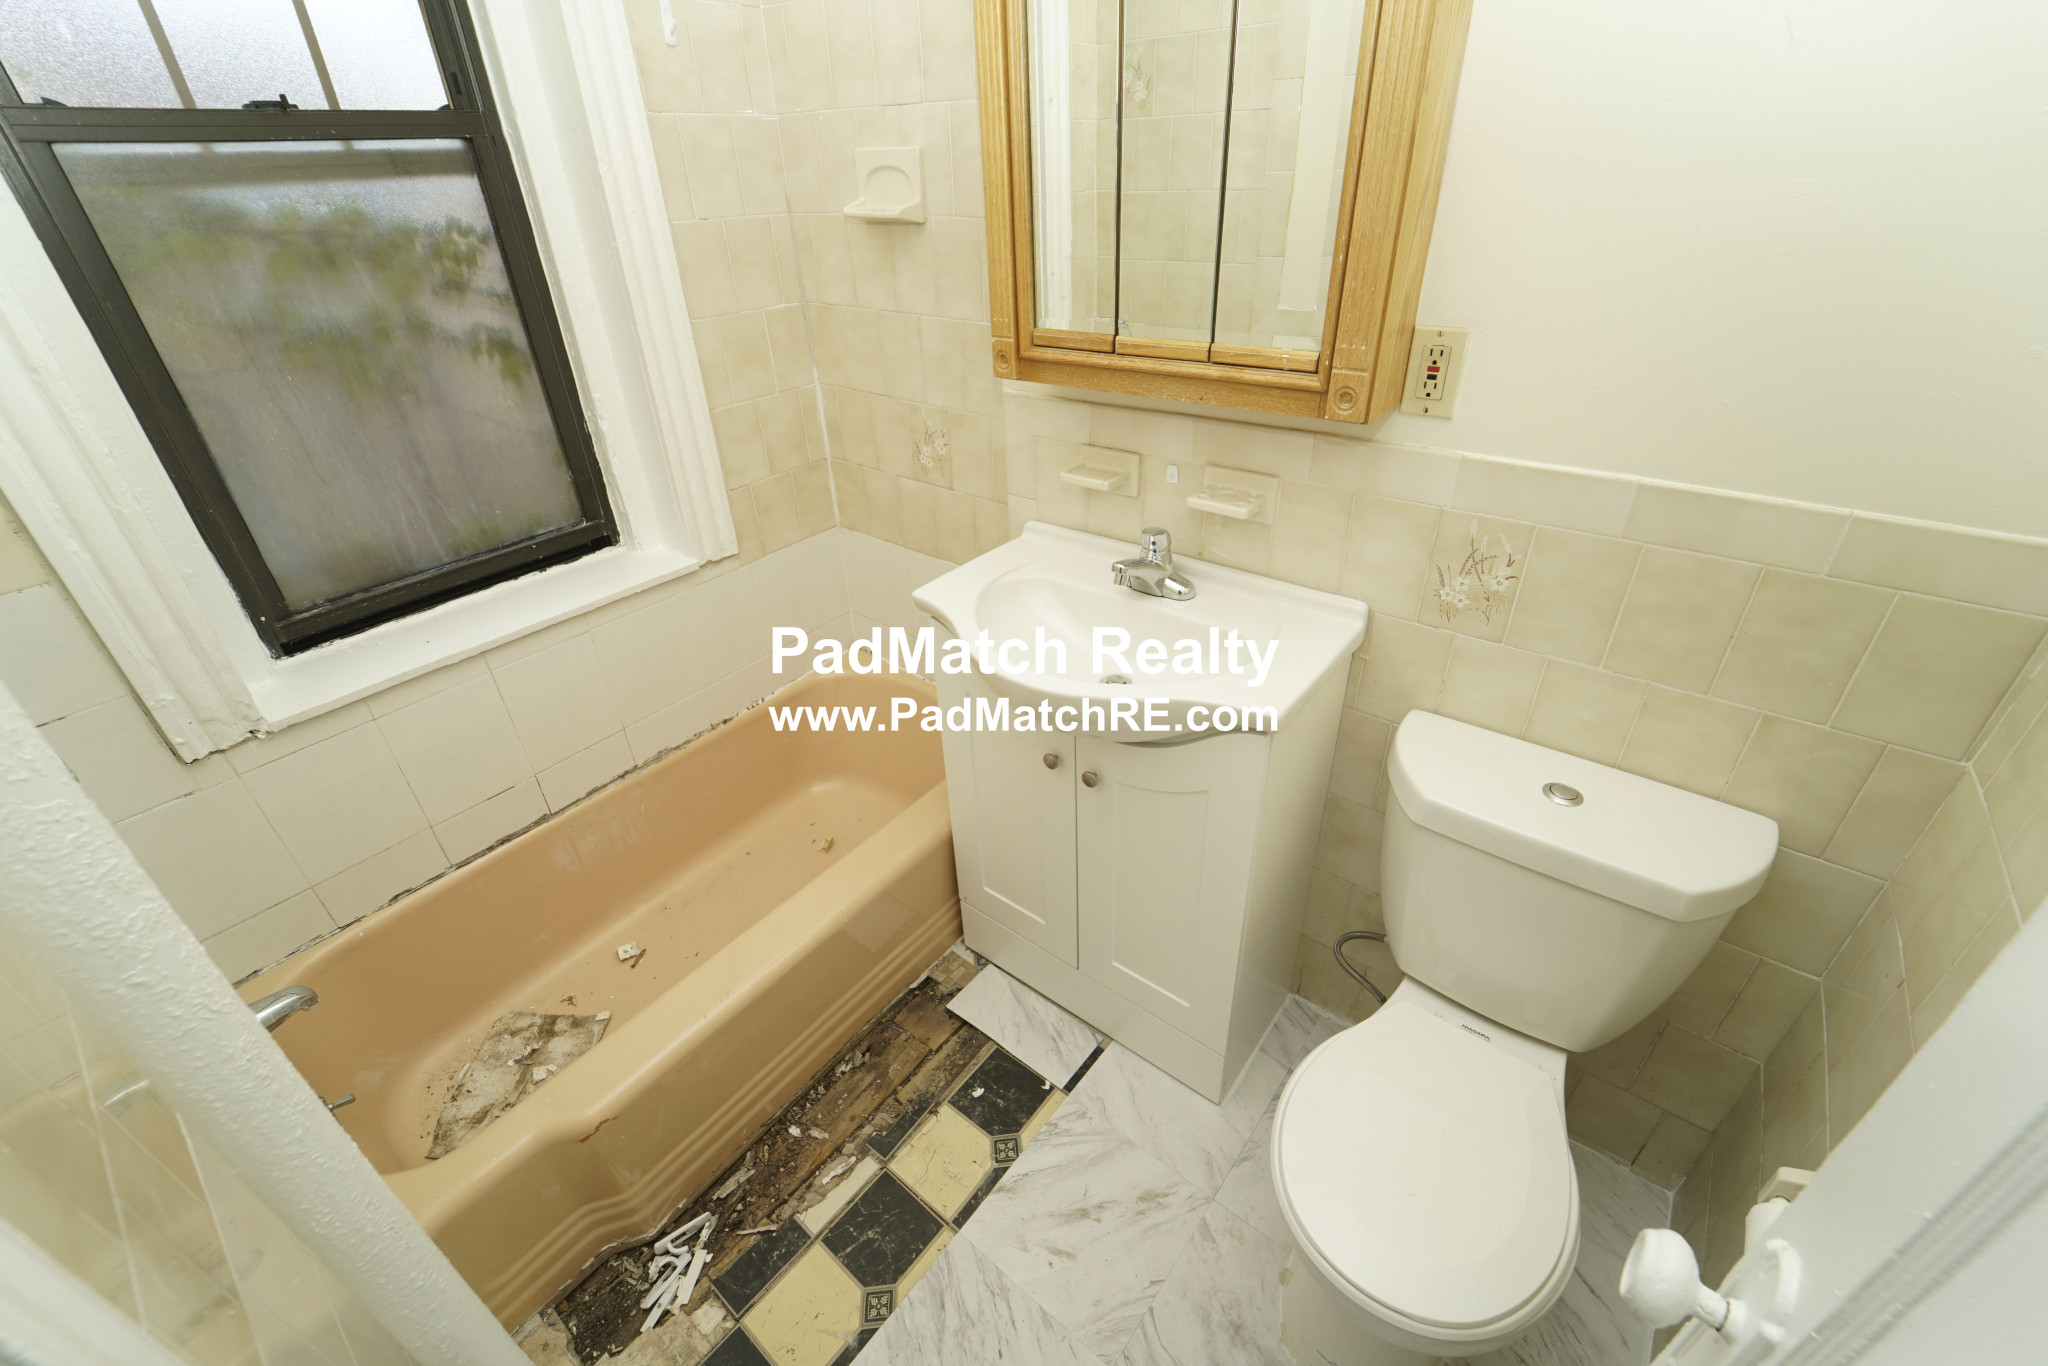 2.8 Beds, 1 Bath apartment in Boston, Fenway for $2,950